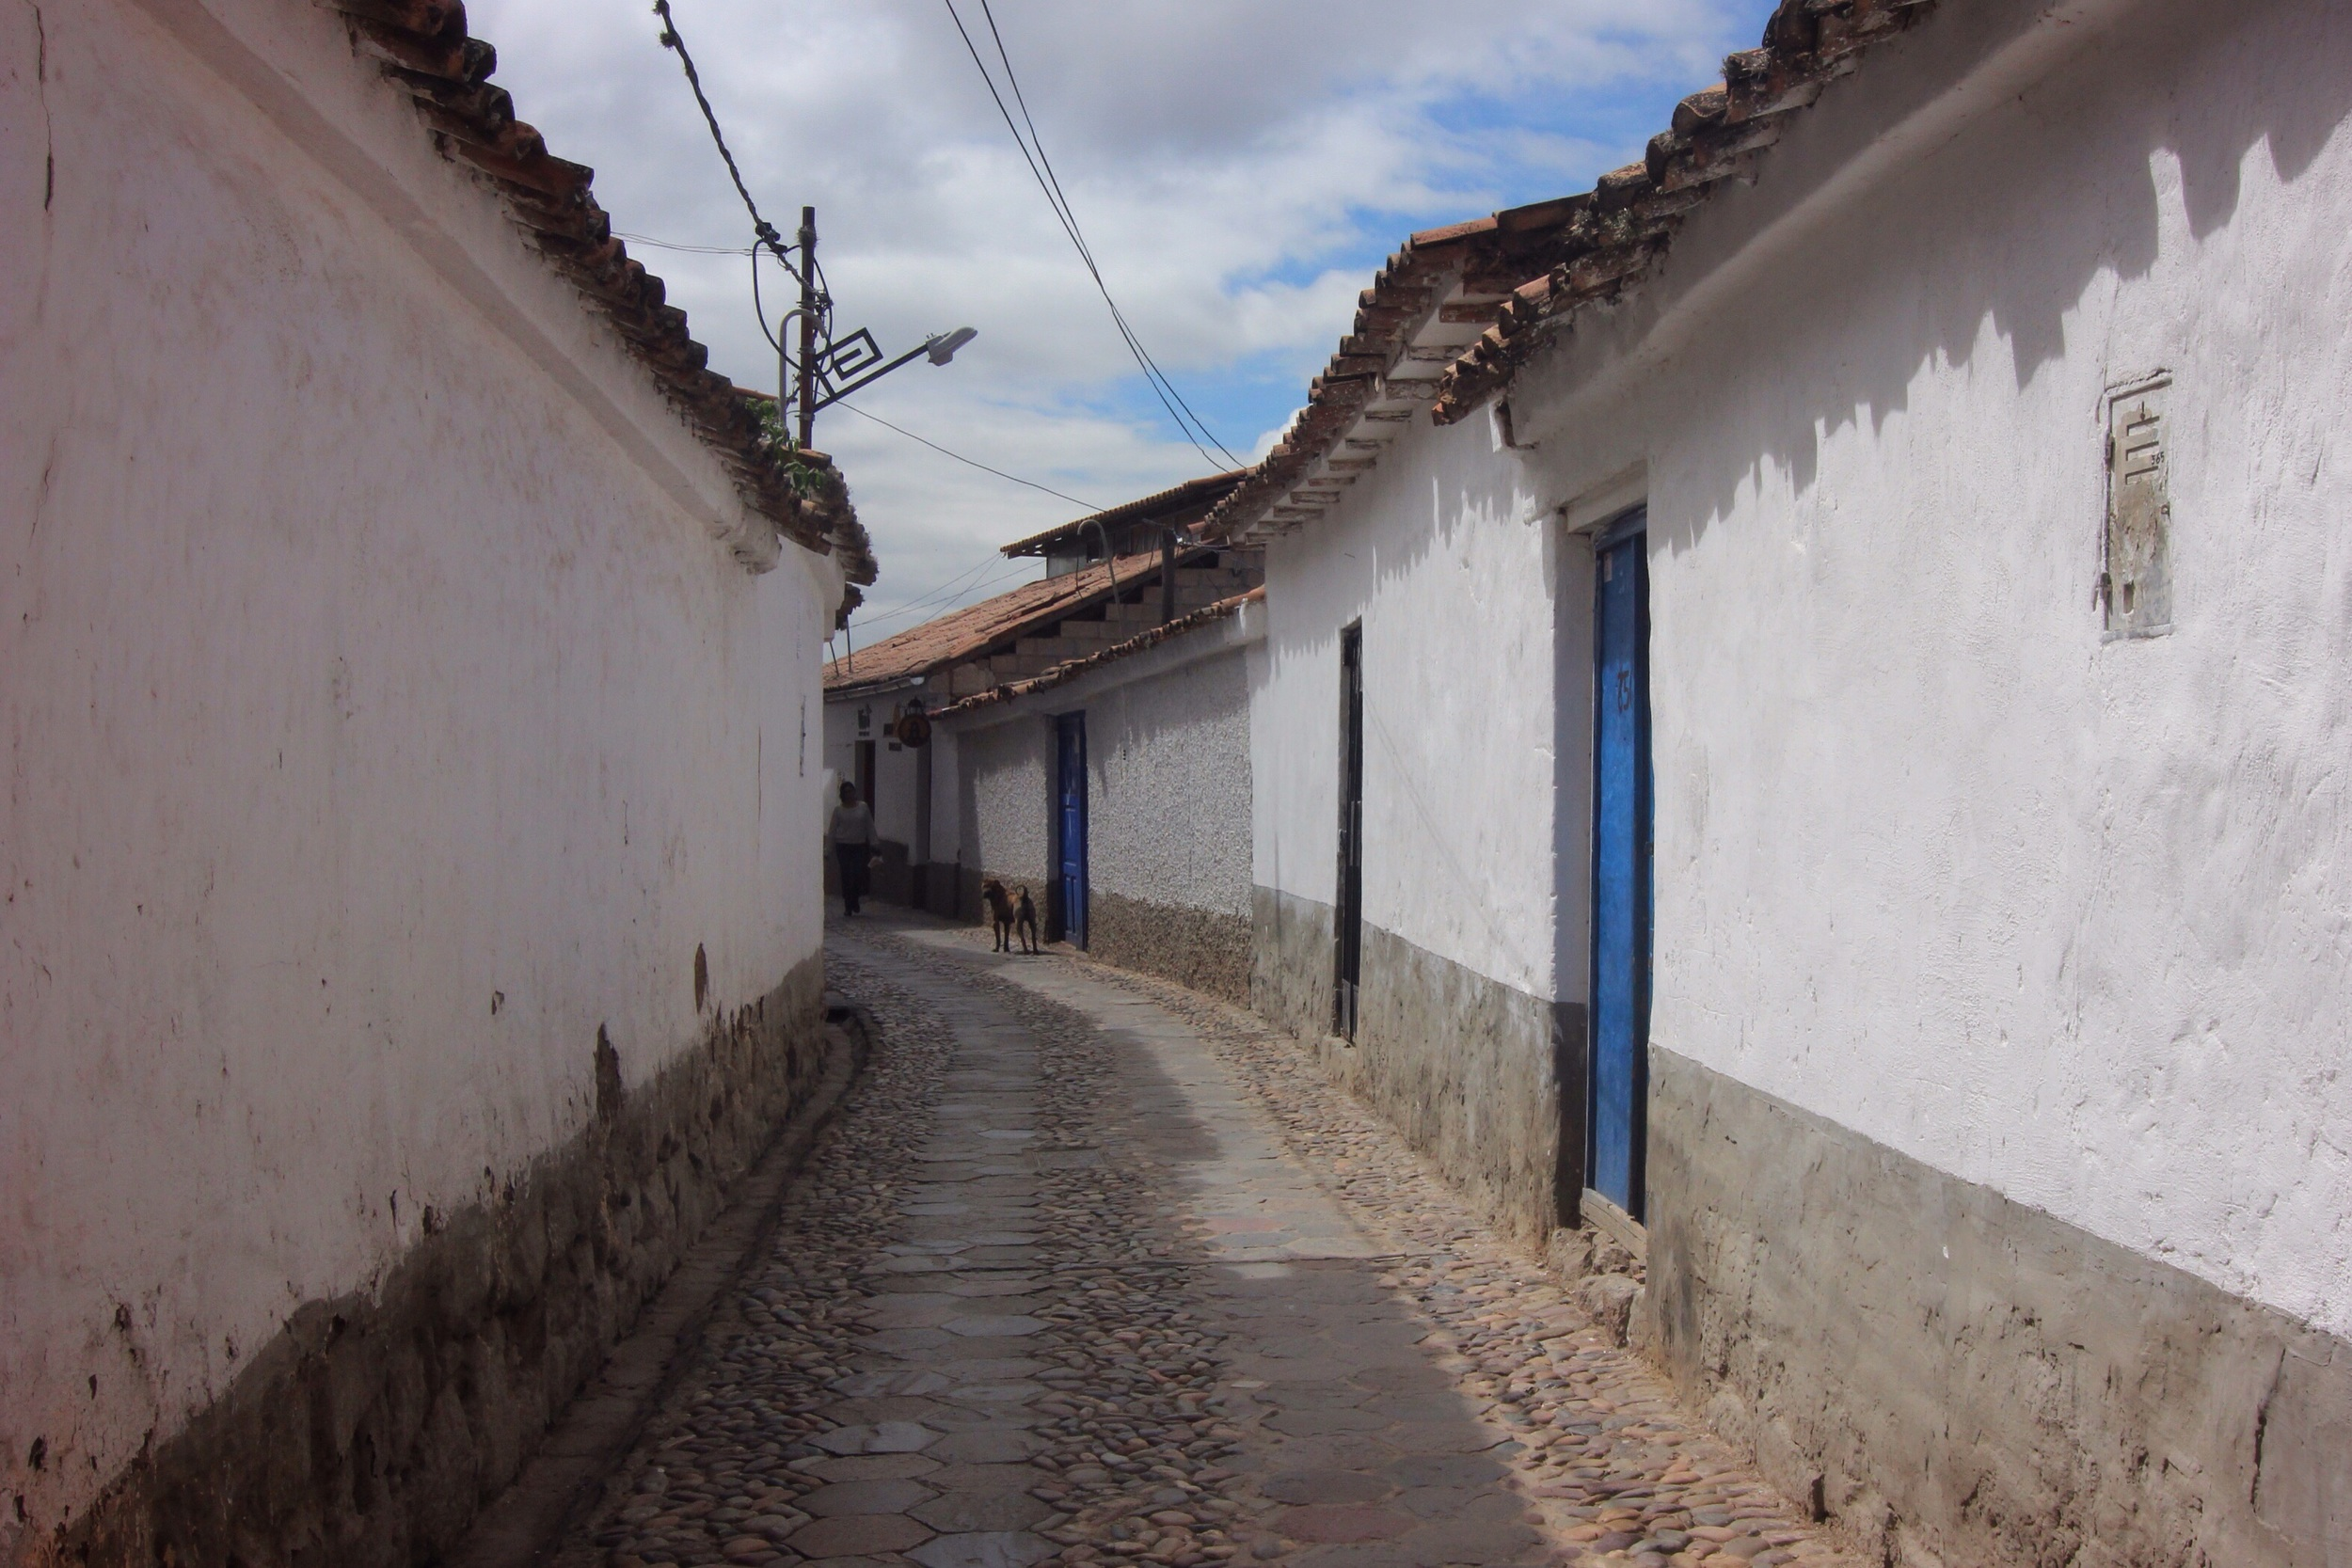 A narrow street in San Blas neighborhood.